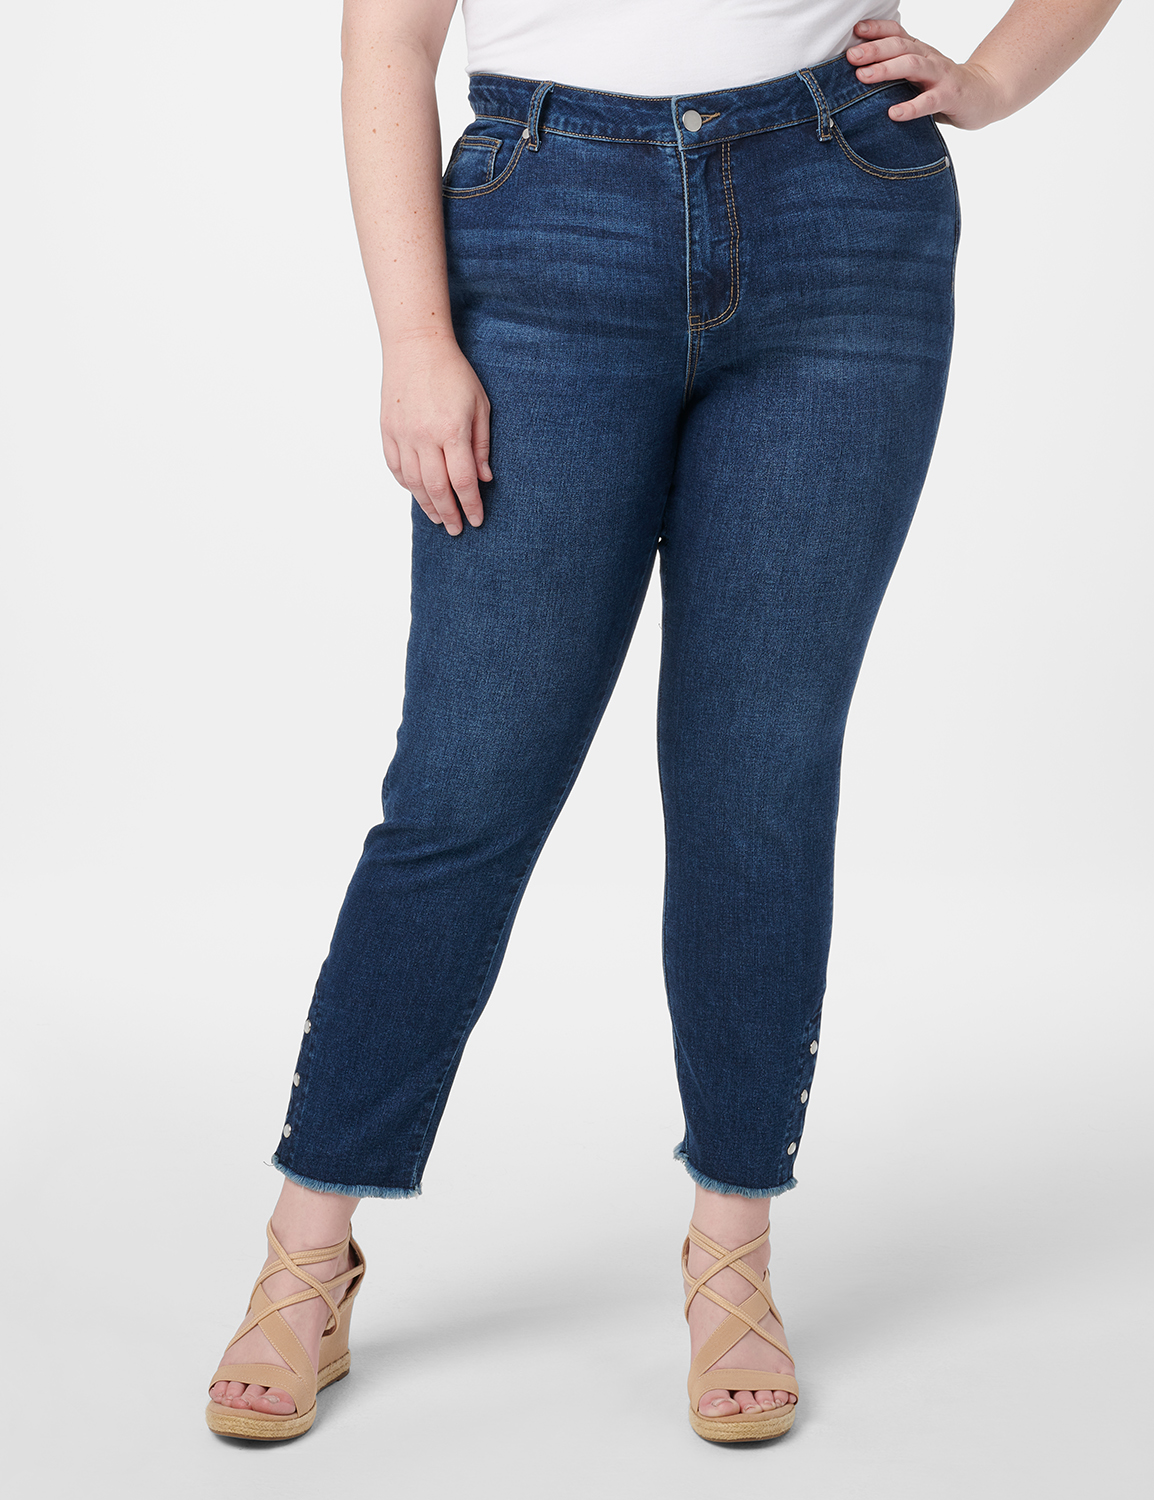 Westport Signature 5 Pocket Skinny Ankle Jean With Snap Button At Ankle - Plus -Dark Wash - Front